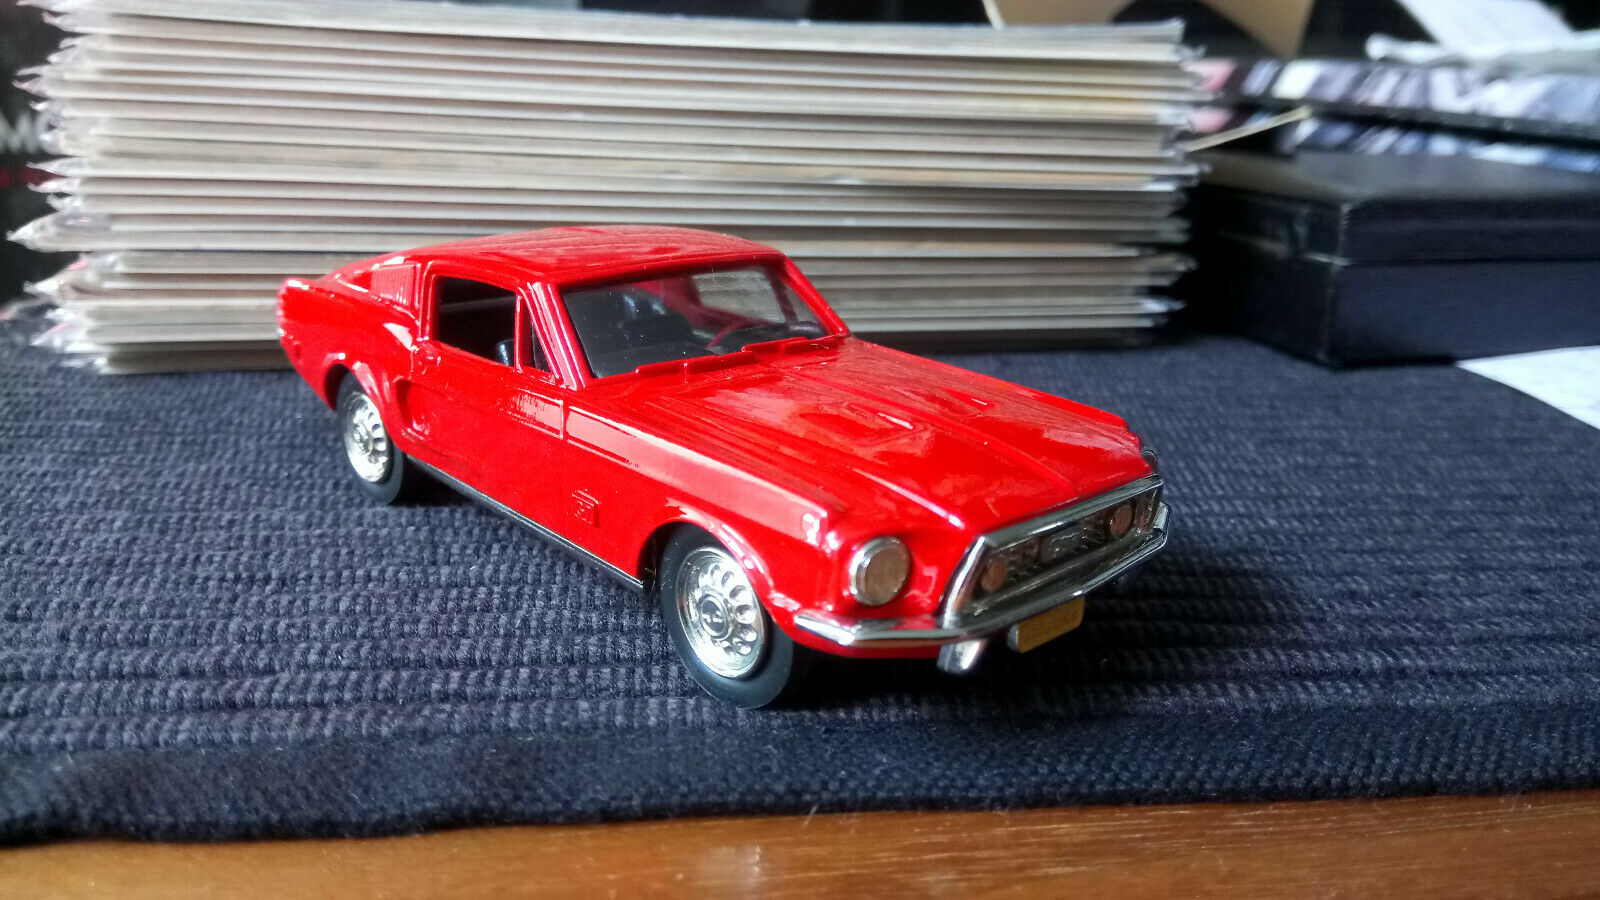 1 43 Brooklin Ford Mustang Fastback BRK. 24a hecho a mano